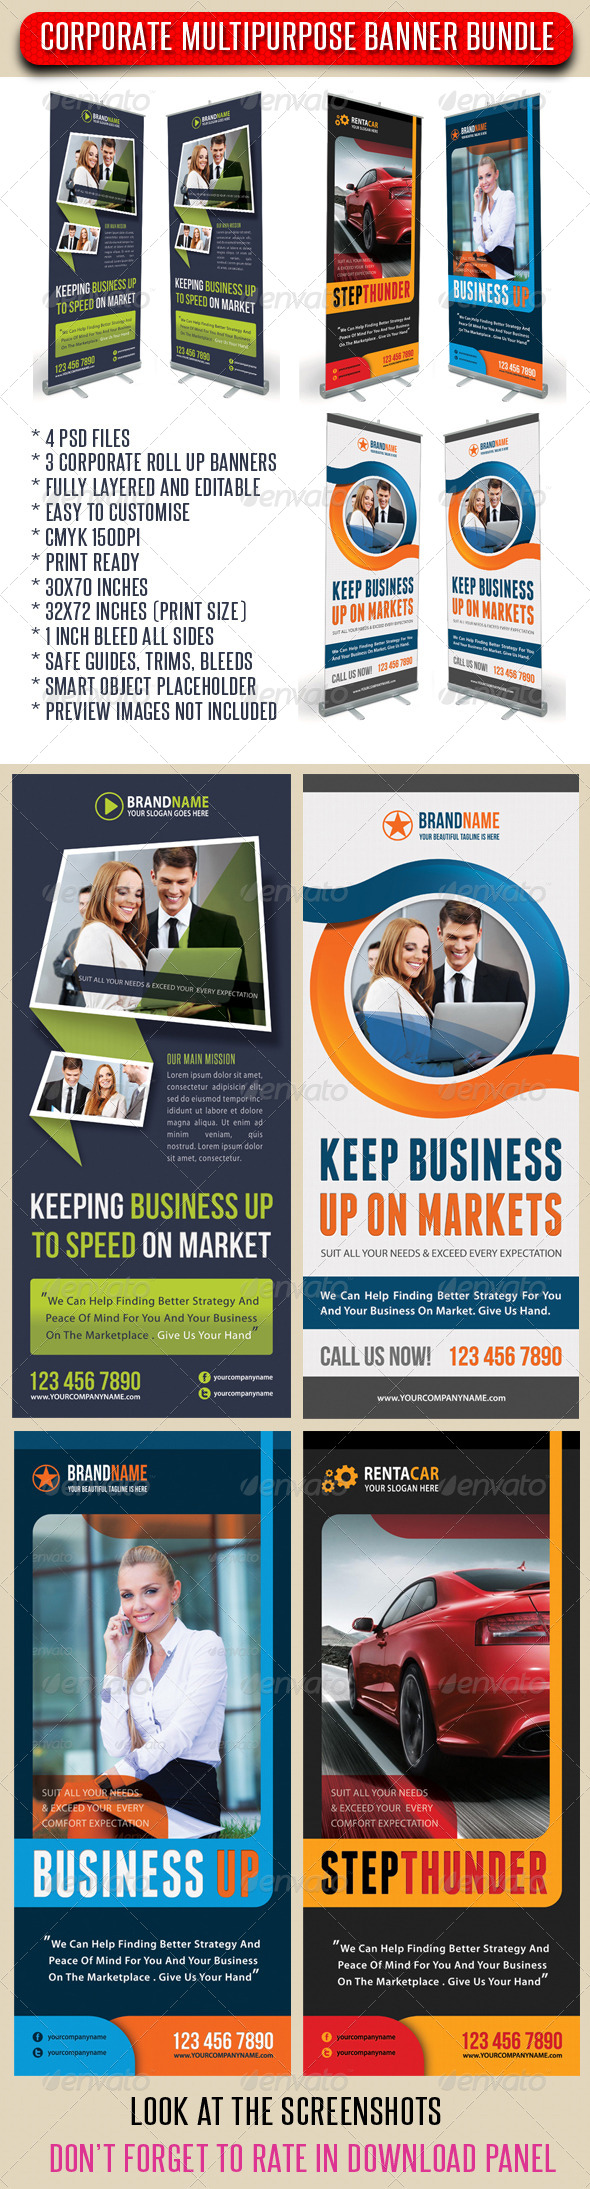 GraphicRiver 3 in 1 Corporate Rollup Banner Bundle 01 7009829